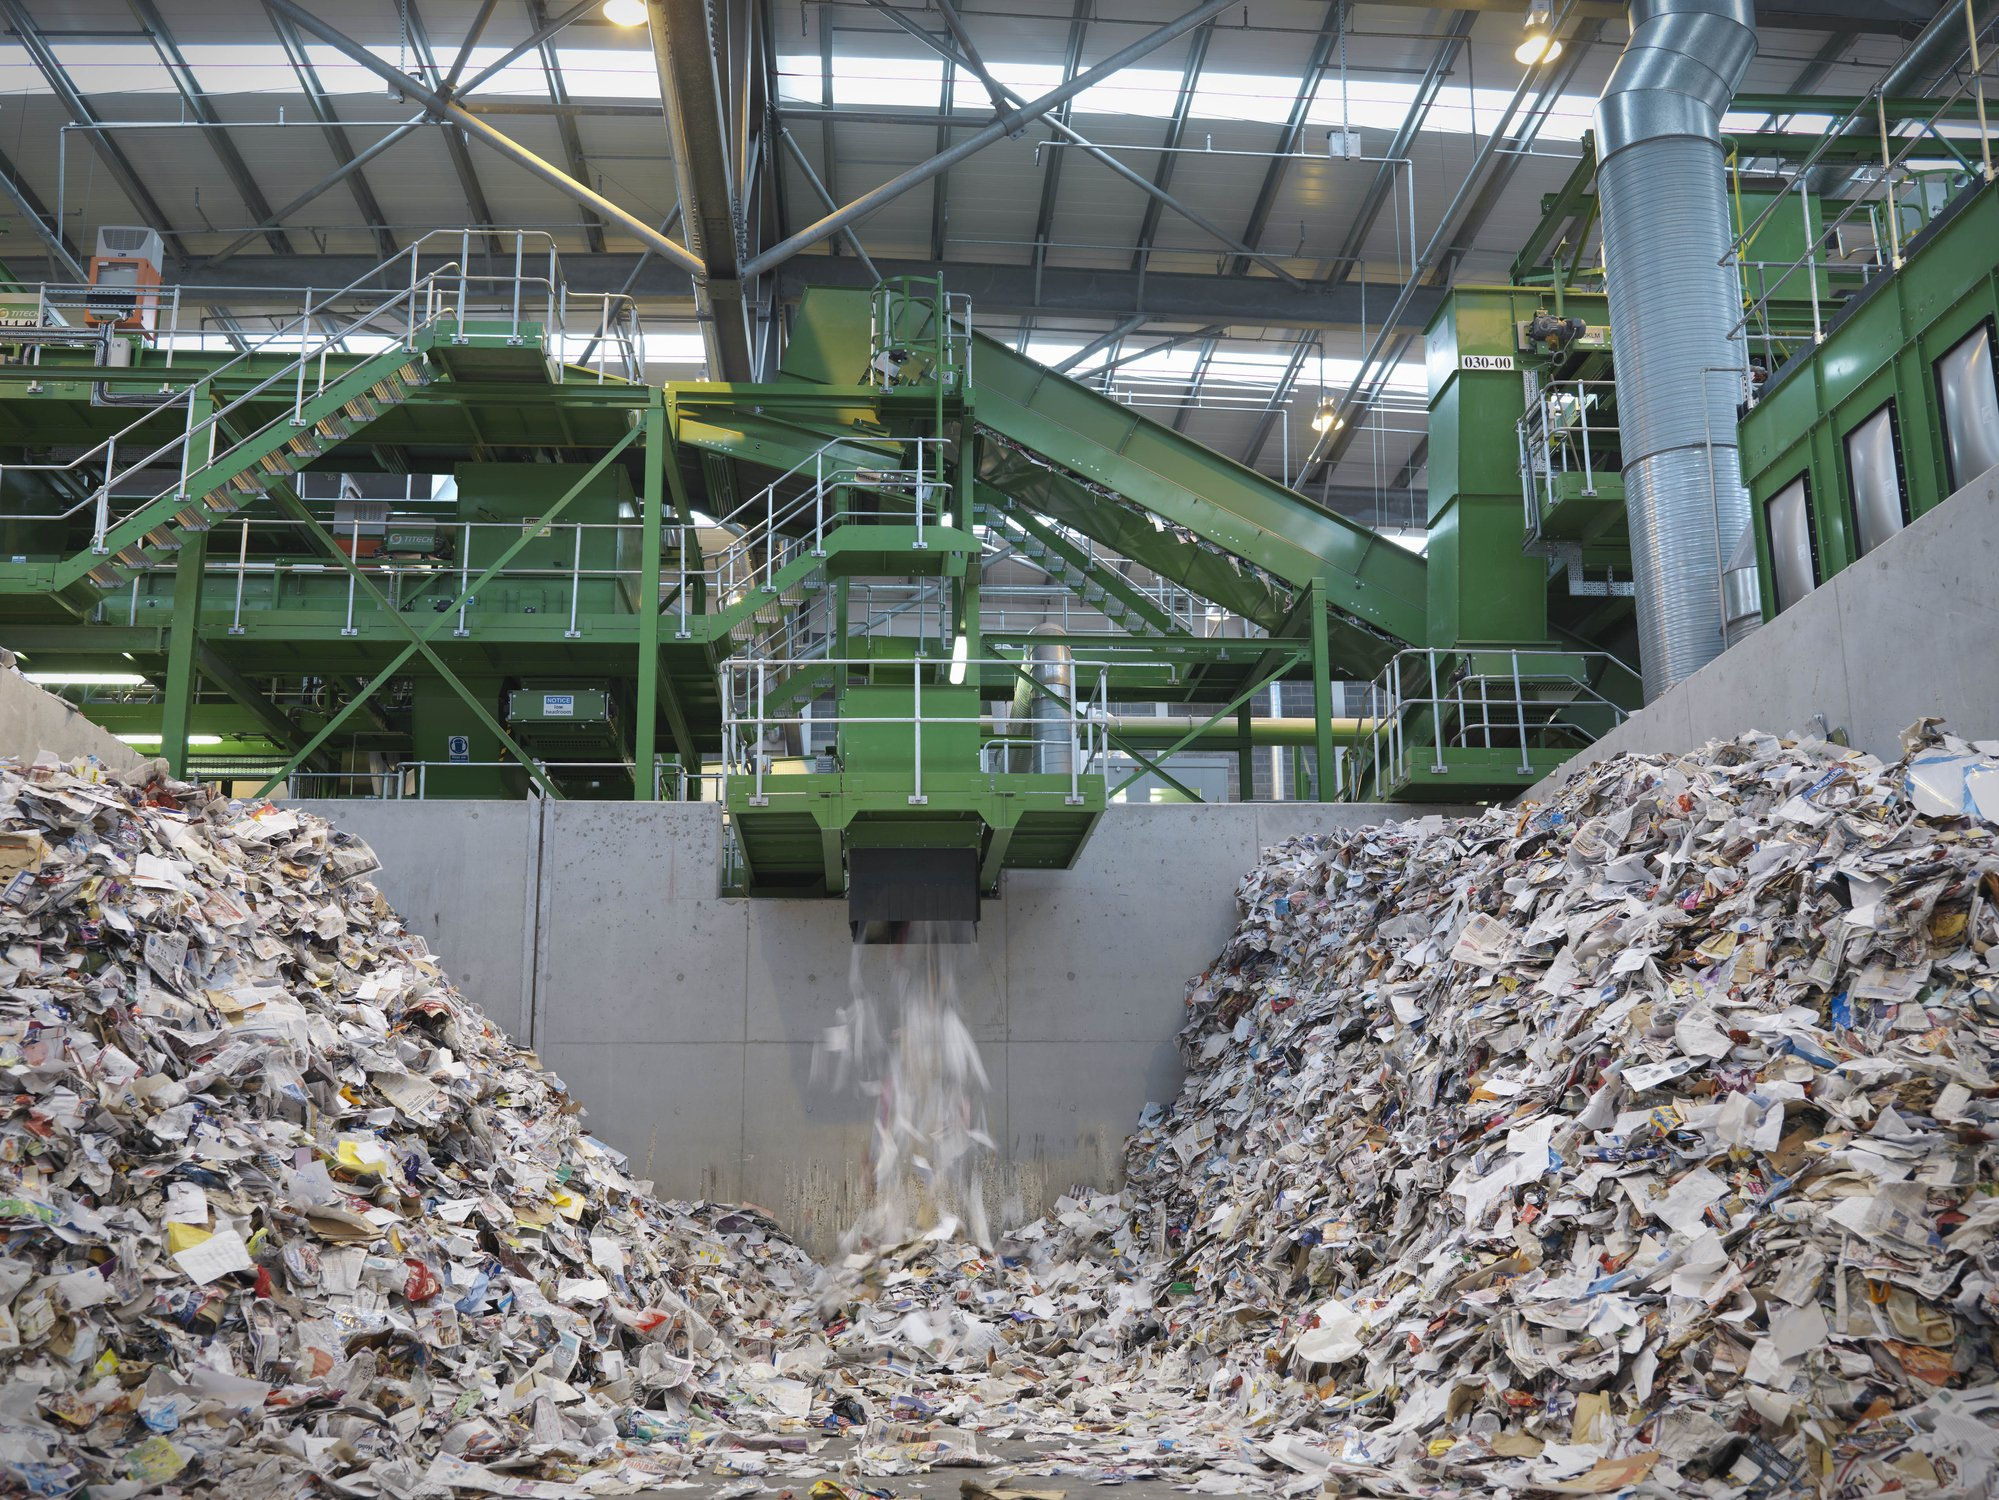 Papierrecyclingmaschine I Quelle: Getty Images